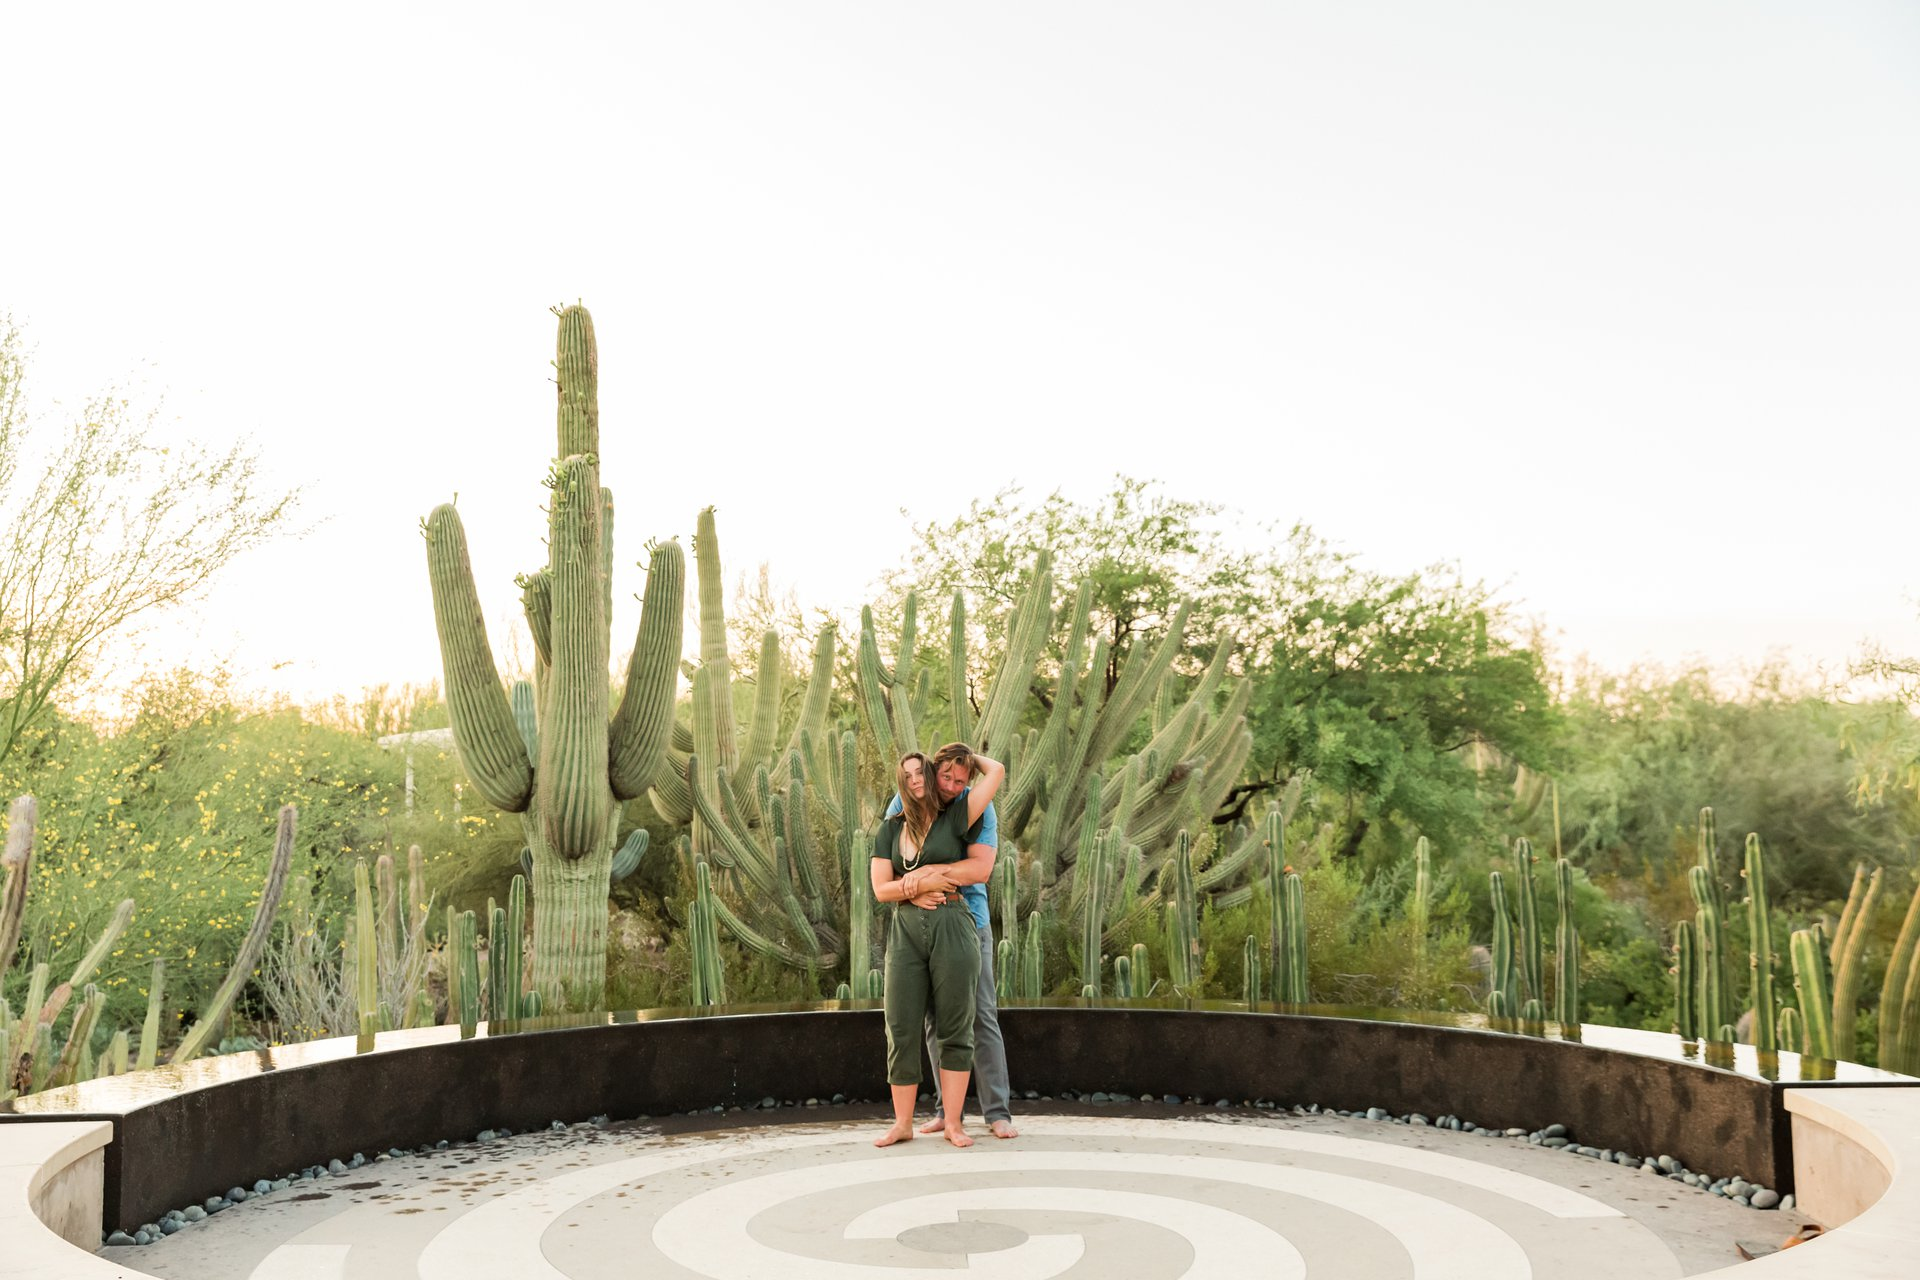 Scottsdale-United States-travel-story-Flytographer-12